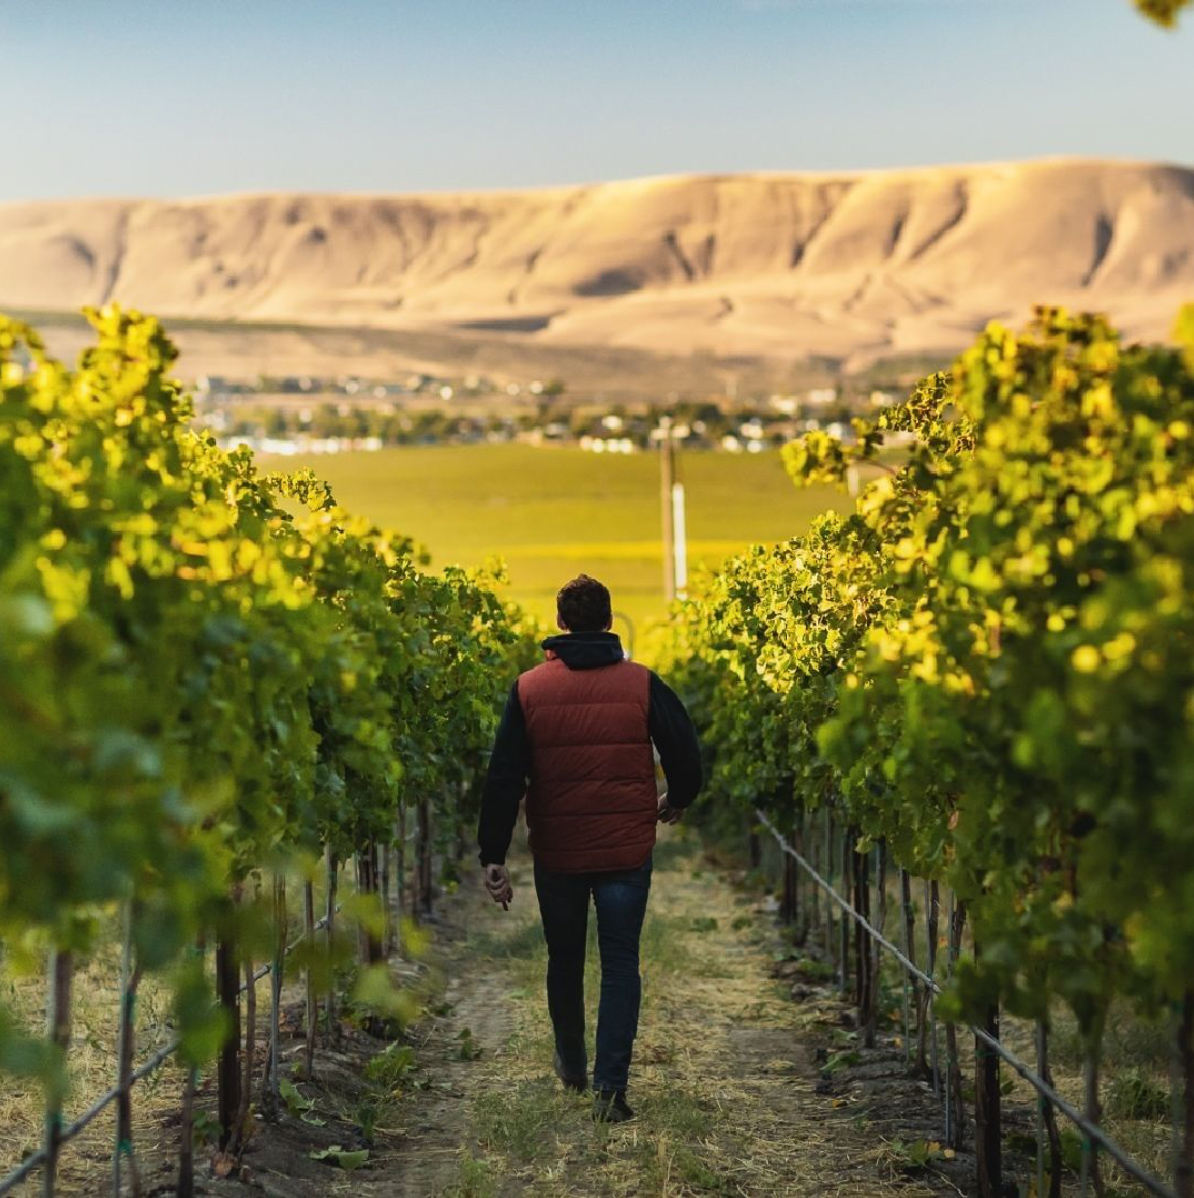 A person in a red vest walks away from the camera and between two rows of grape vines. Light hits the tops of the vines and the tan, gullied hill in the distance.